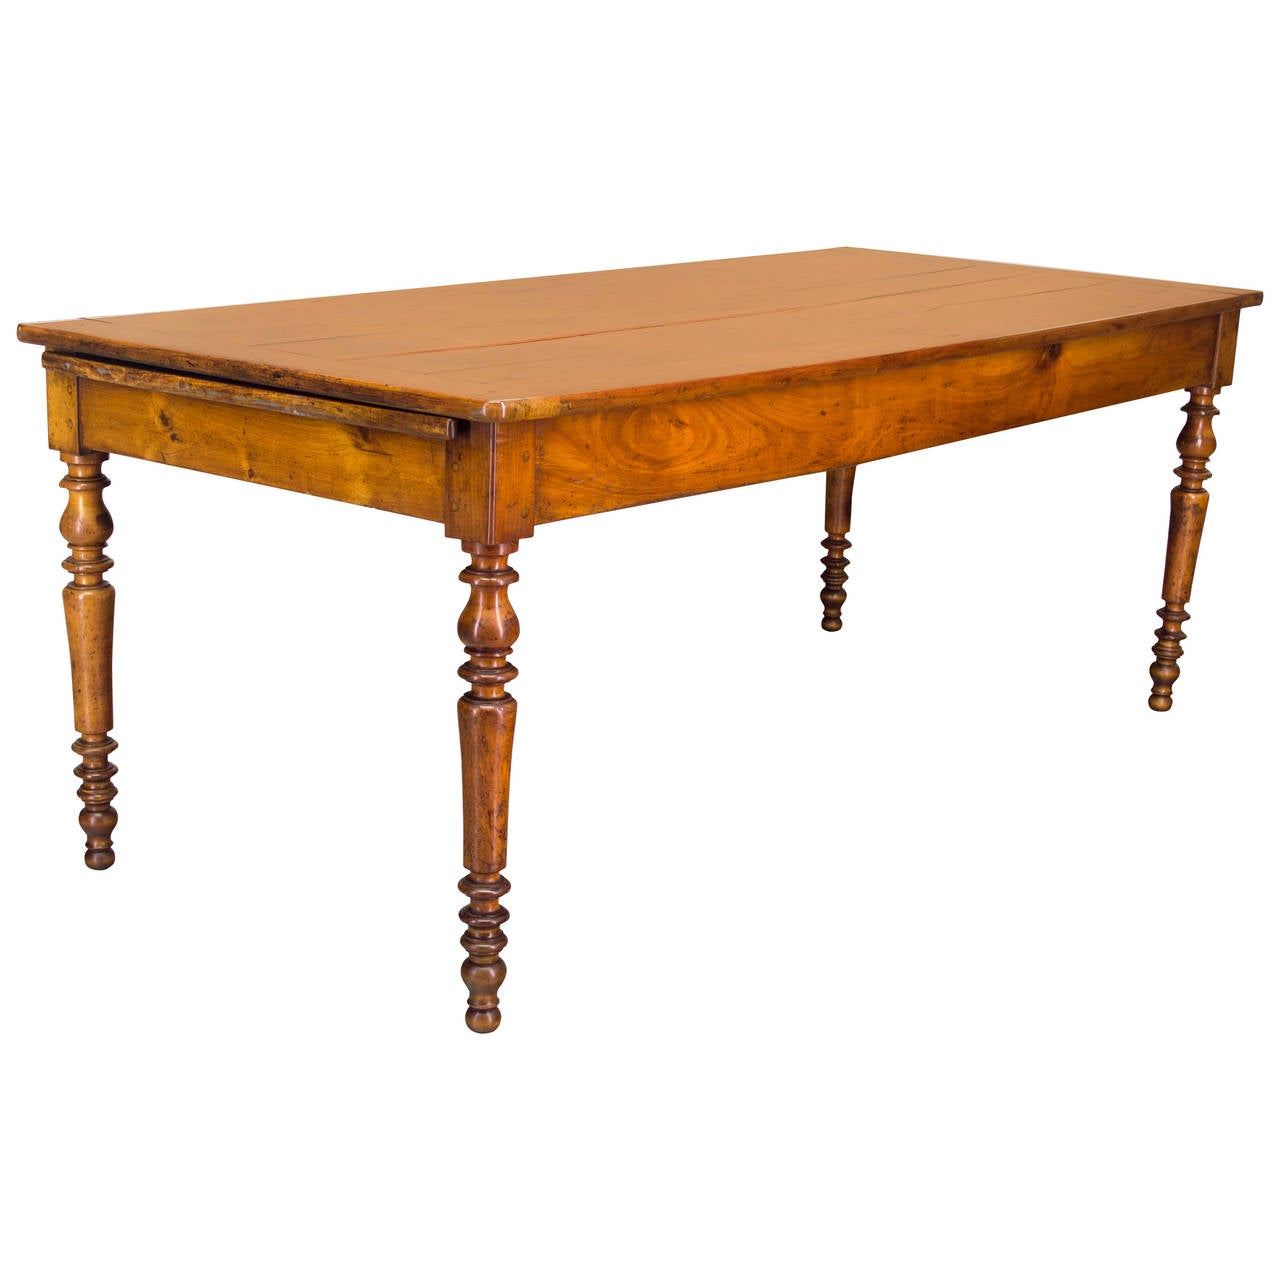 French country farm table at 1stdibs